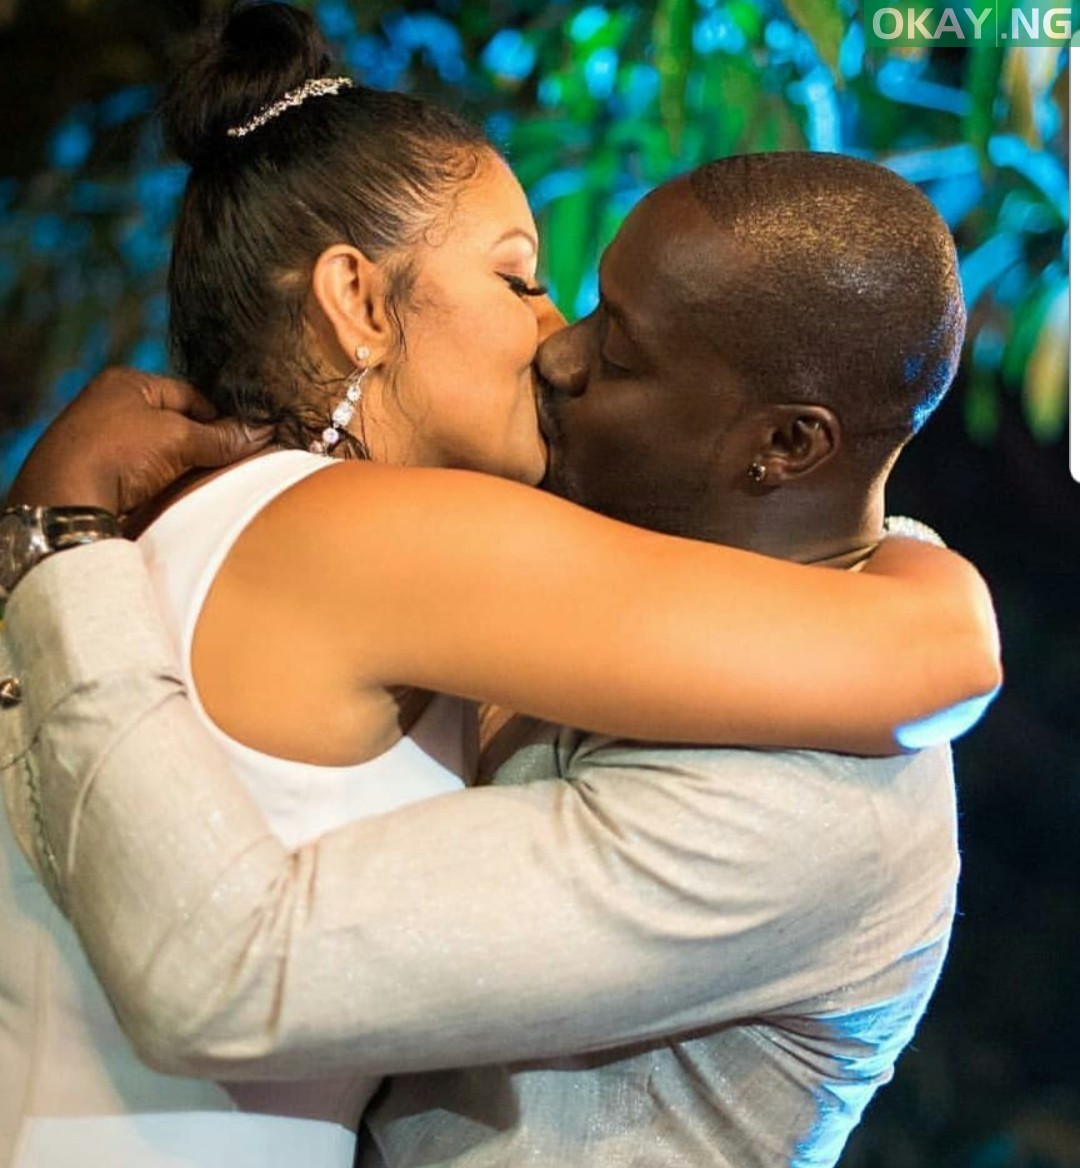 Bettie Jennifer and Chris Attoh Okay ng - Chris Attoh's wife Bettie Jennifer killed in US